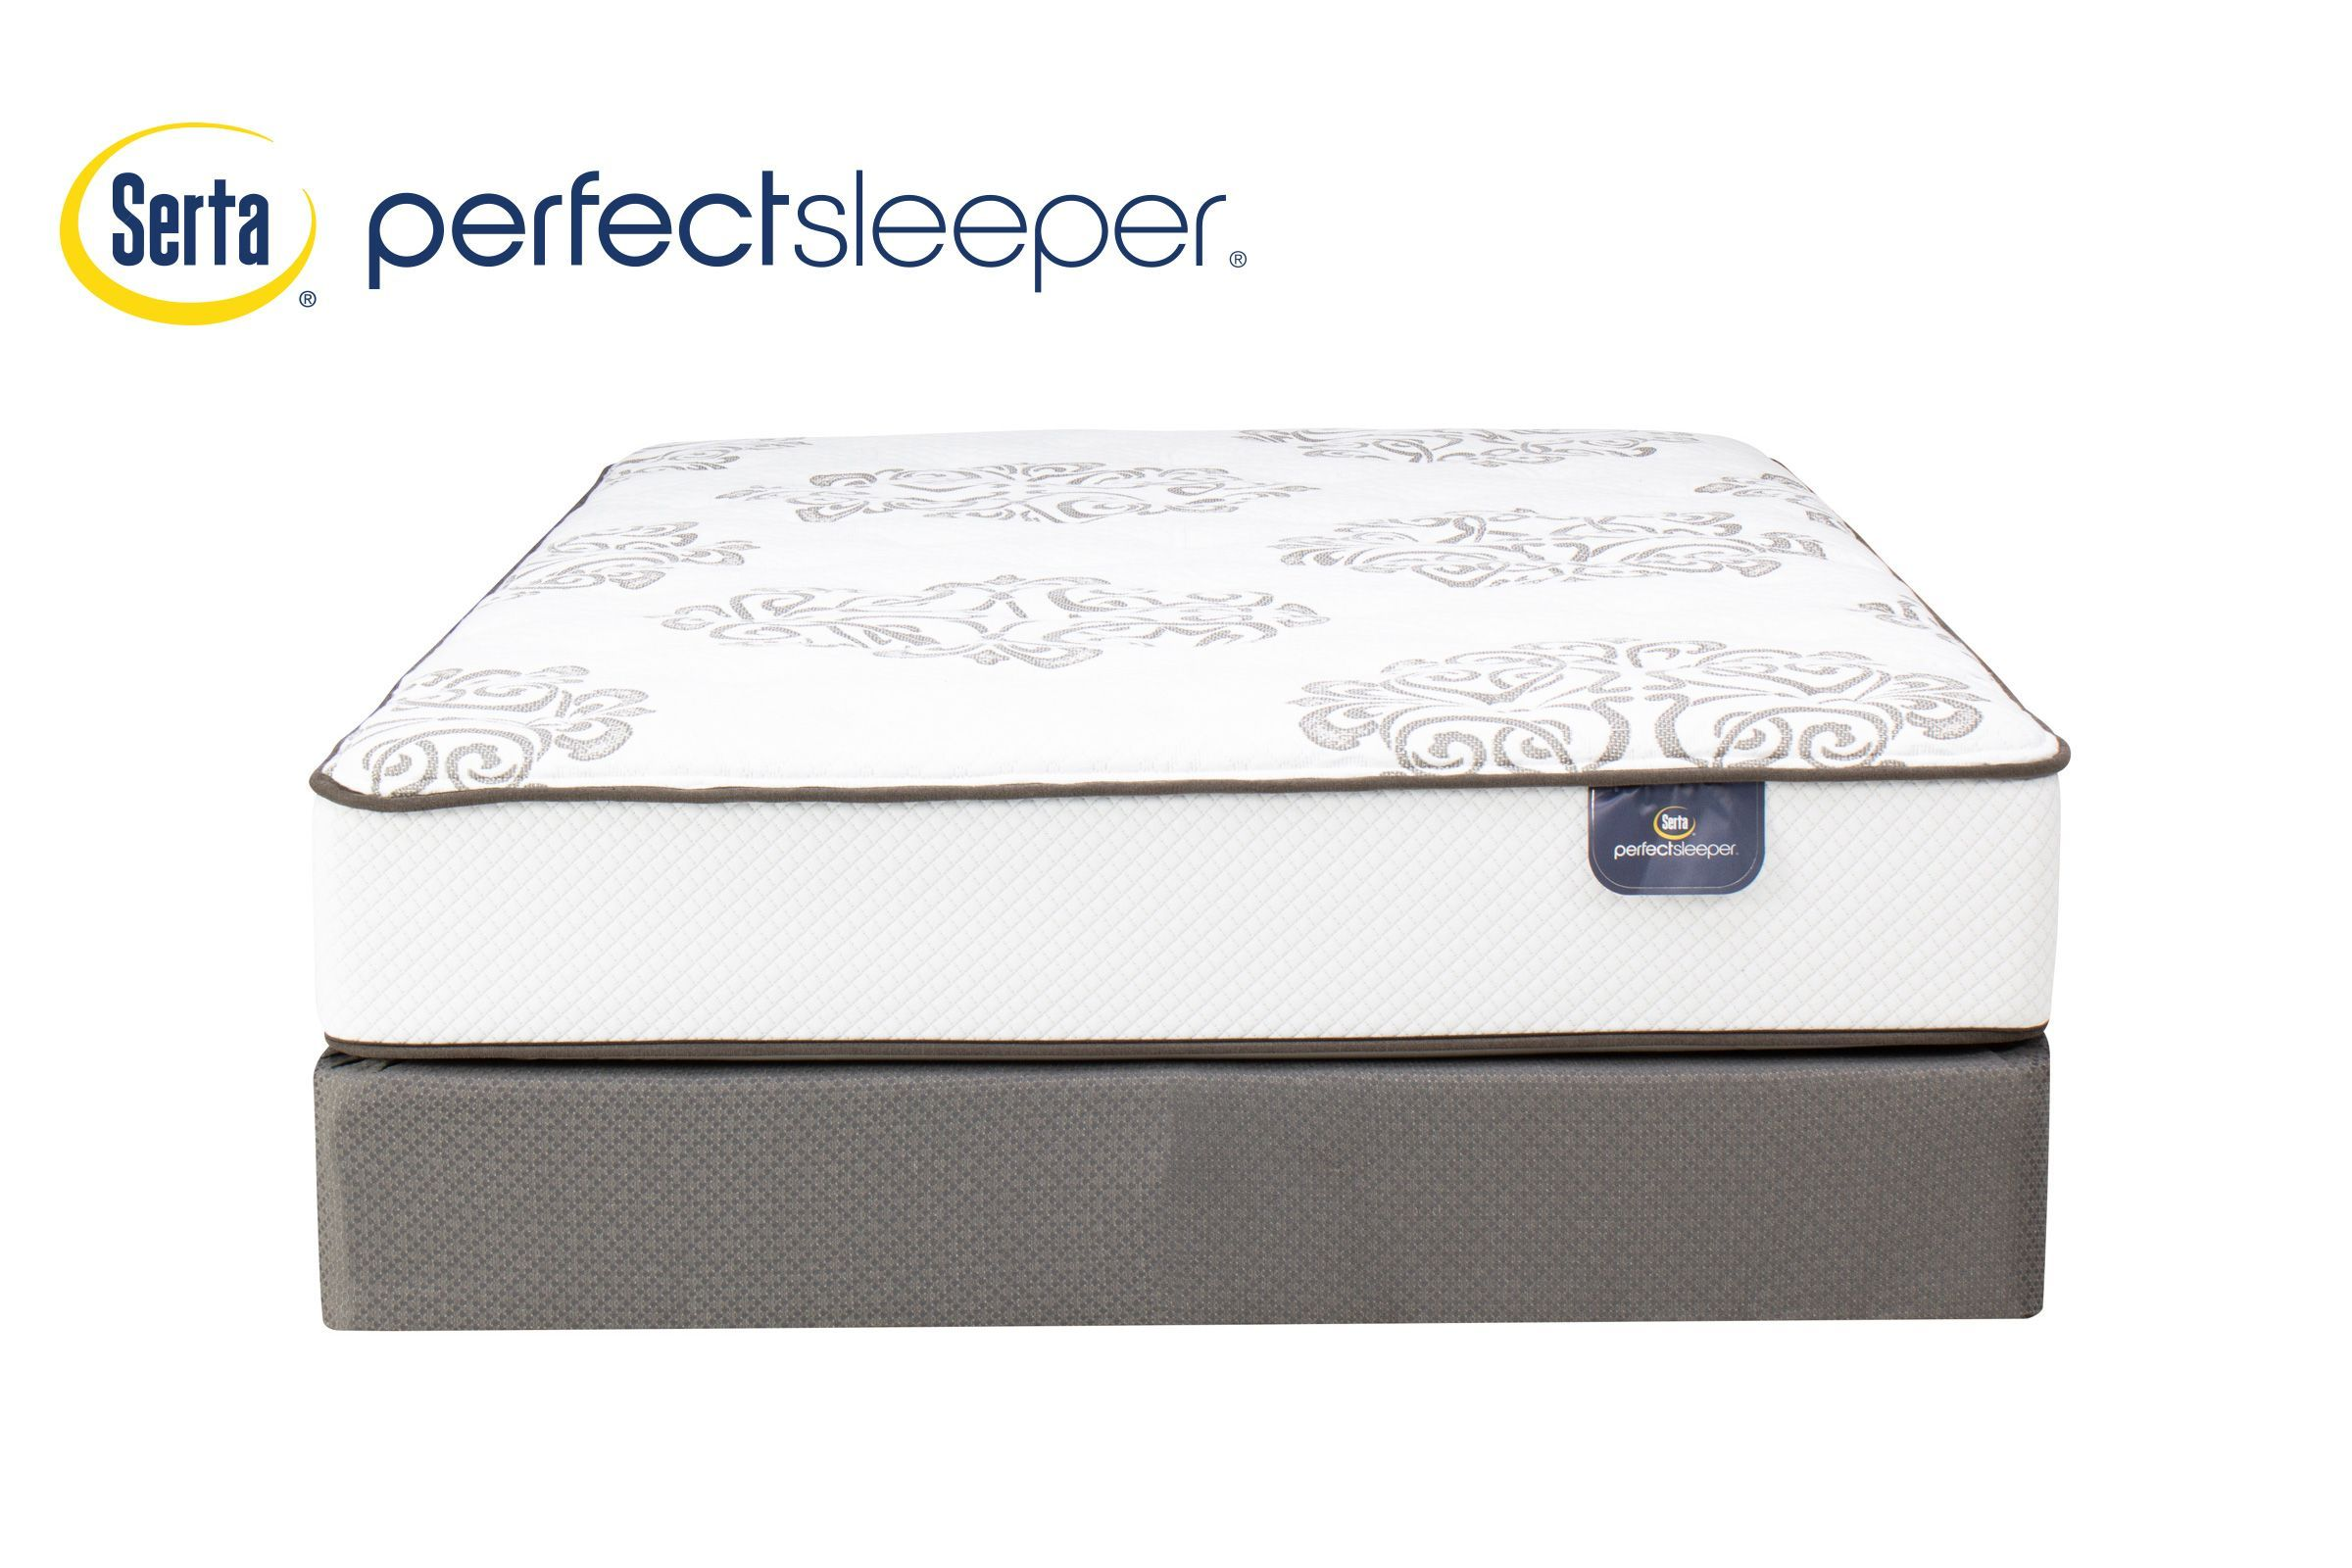 Serta Perfect Sleeper Glidewell Plush Has Features Built In That